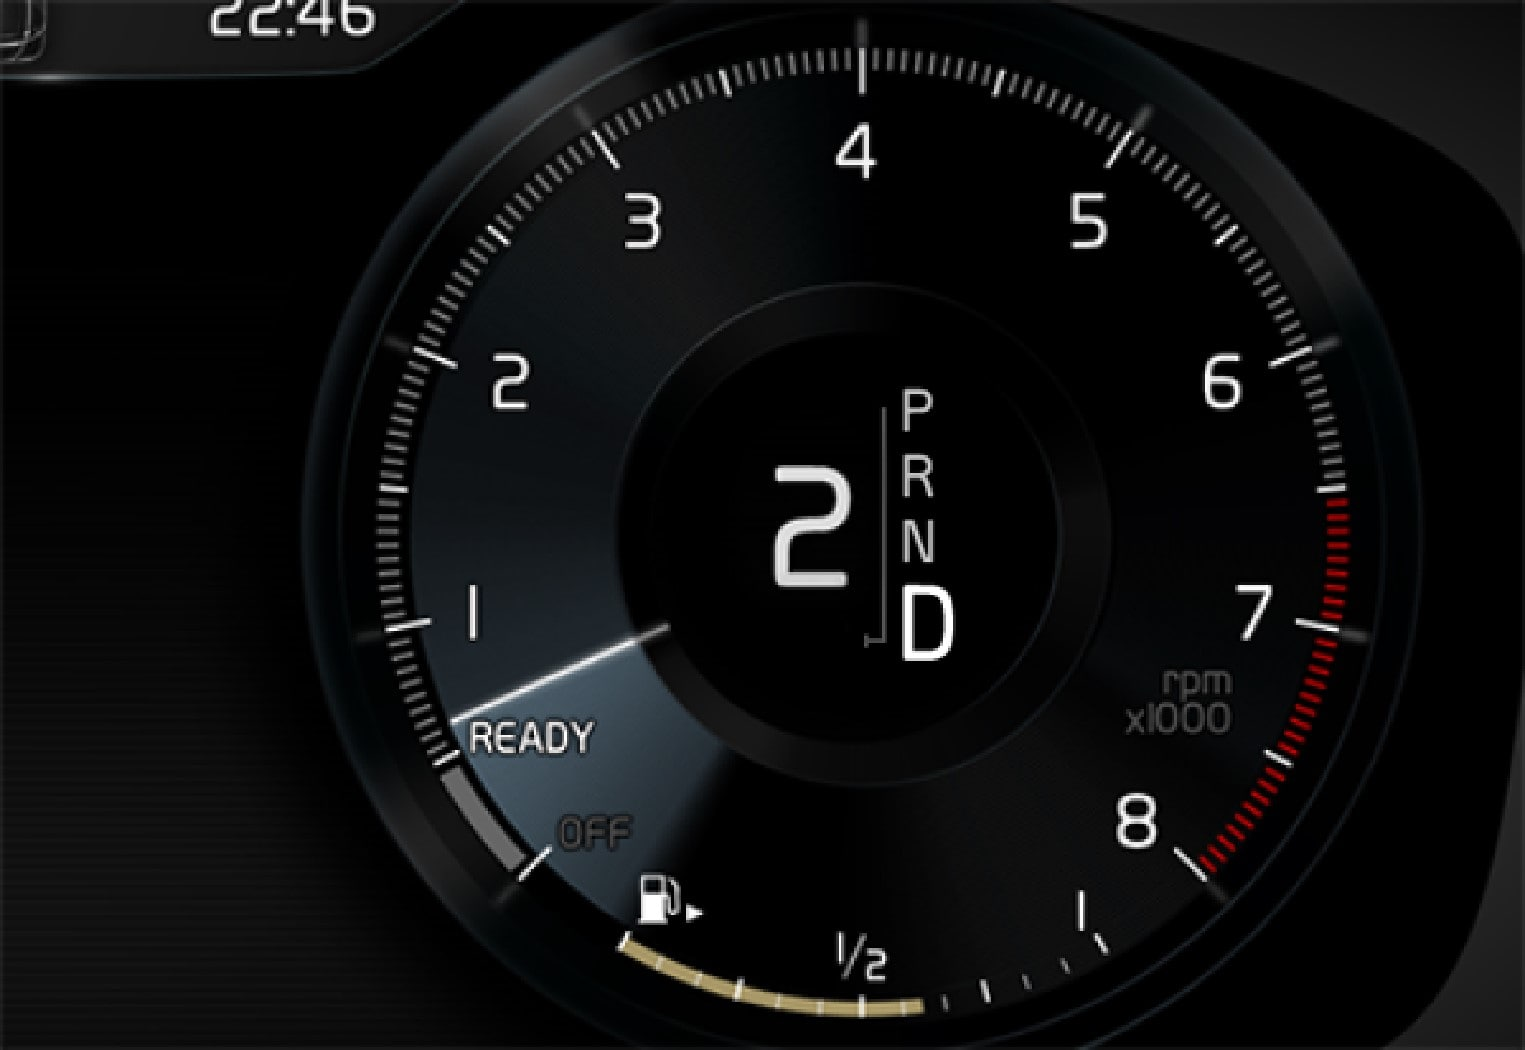 P5-1519-XC90-Gear mode D in driver display